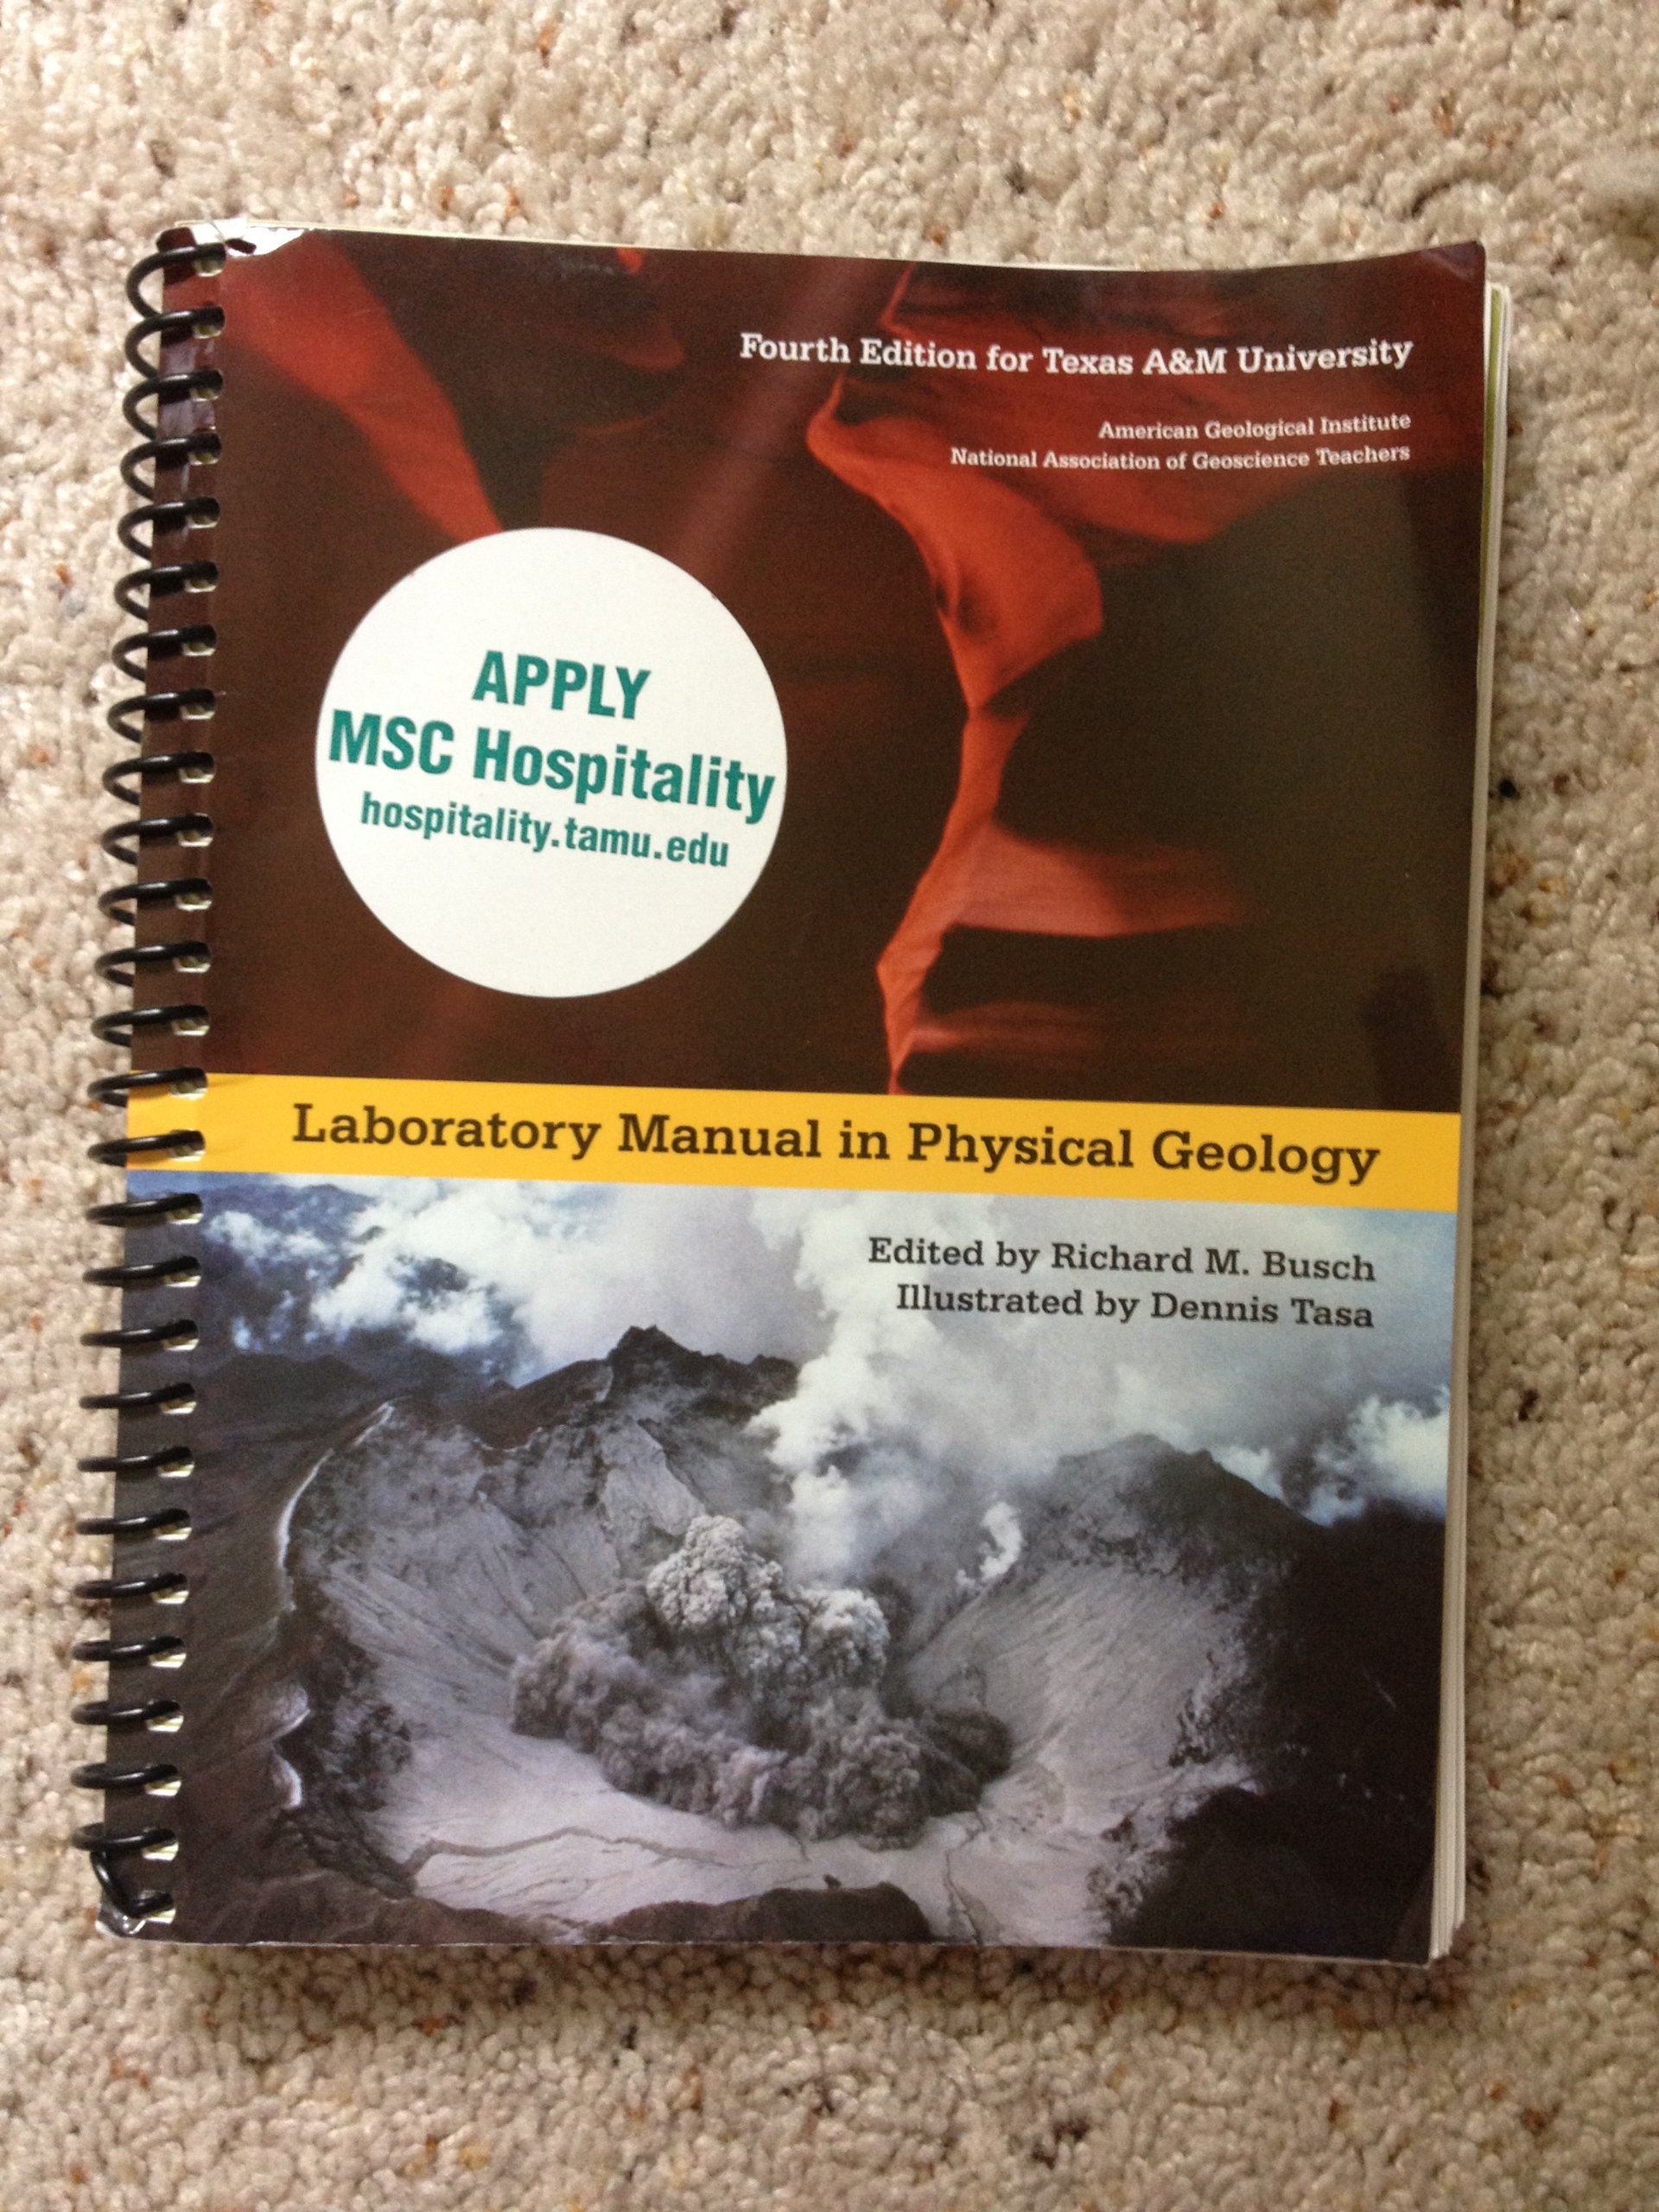 Laboratory Manual in Physical Geology, Fourth Edition for Texas A&M  University: American Geological Institute, Richard M. Busch, Dennis Tasa:  9781256431039: ...